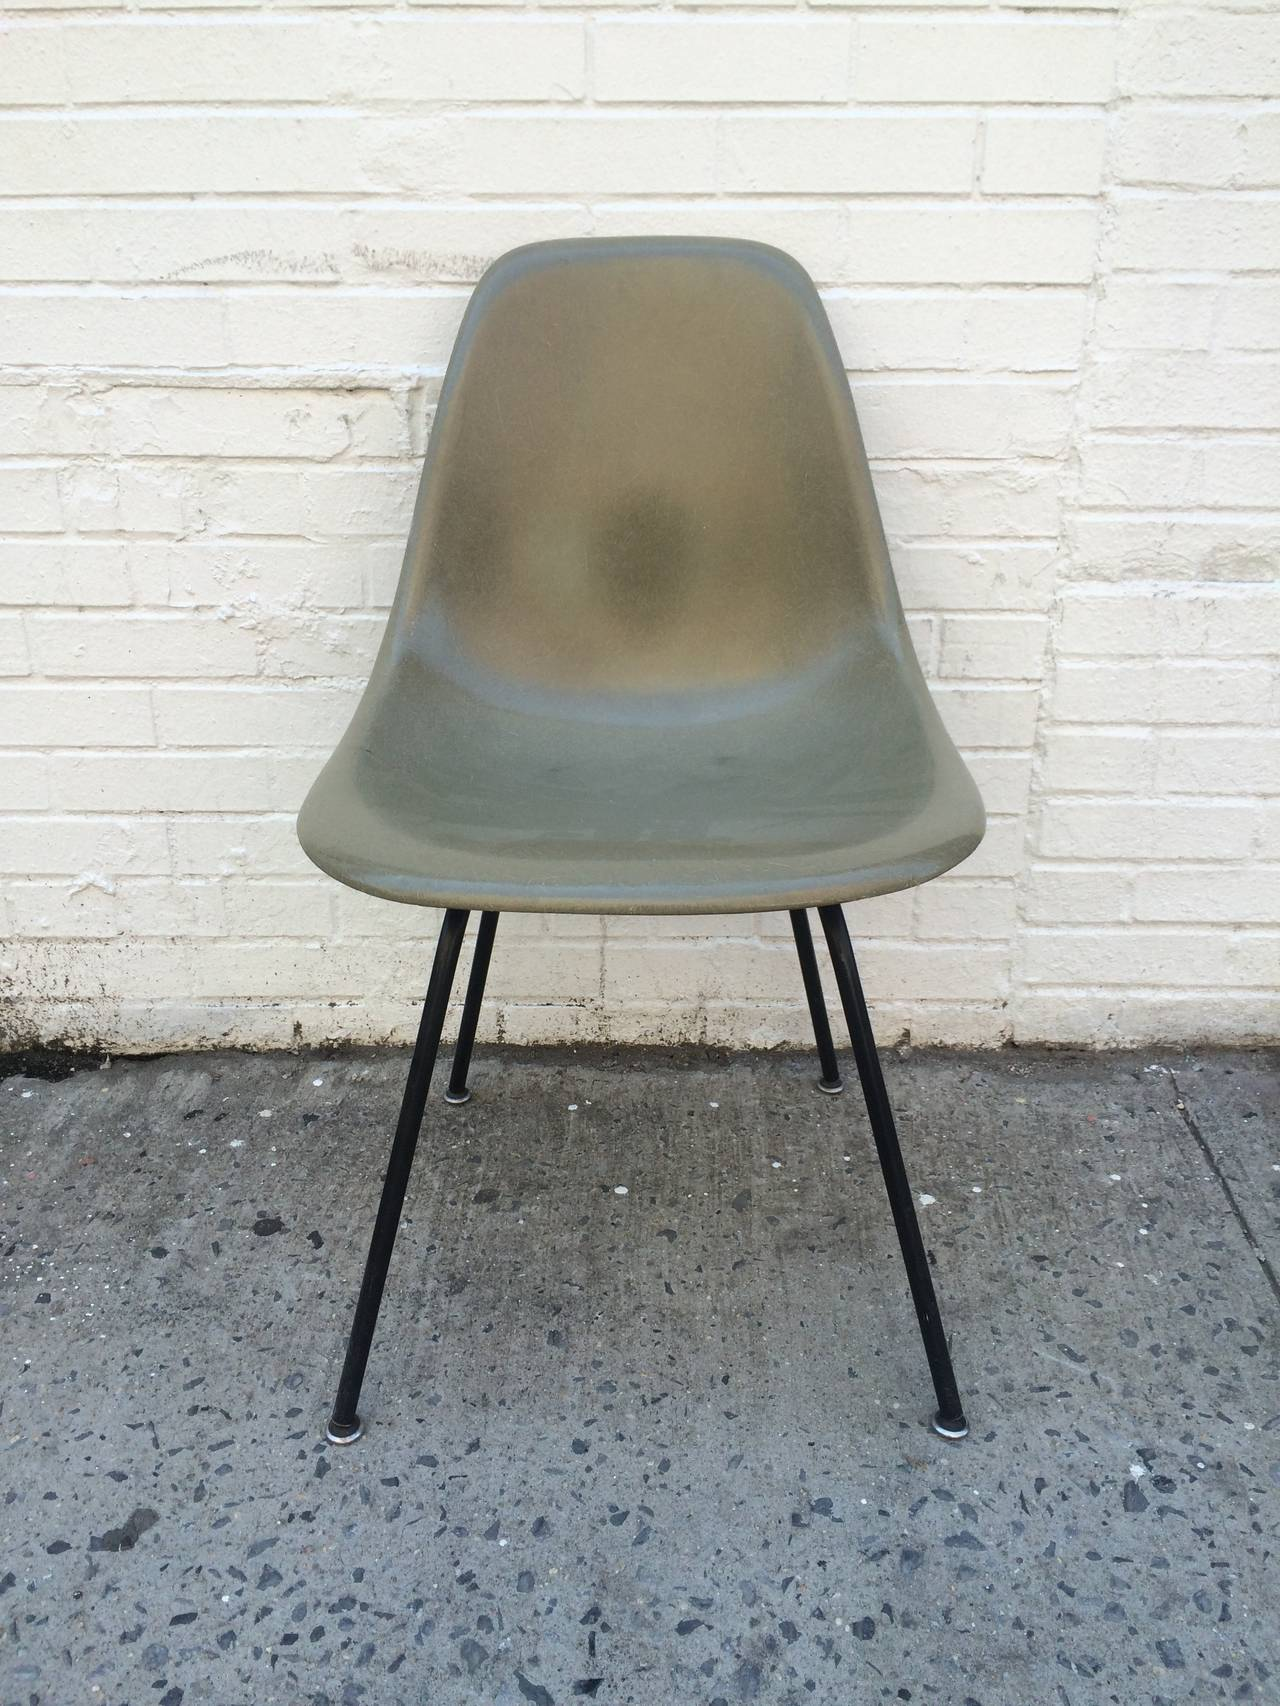 Mid-Century Modern Eames Herman Miller Raw Umber Fiberglass Chair For Sale